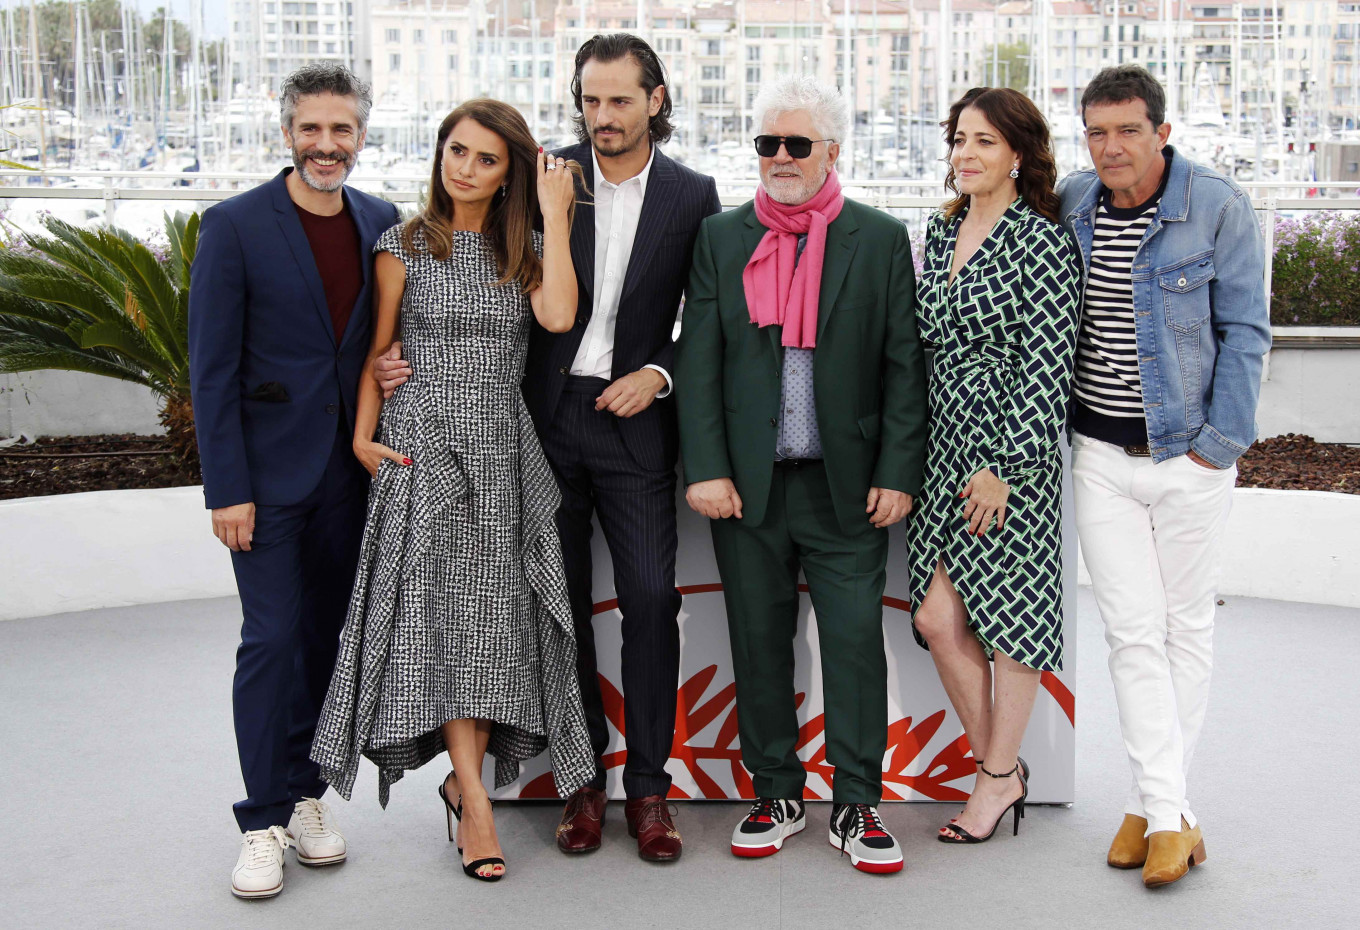 Almodovar's ode to filmmaking hits the right notes at Cannes